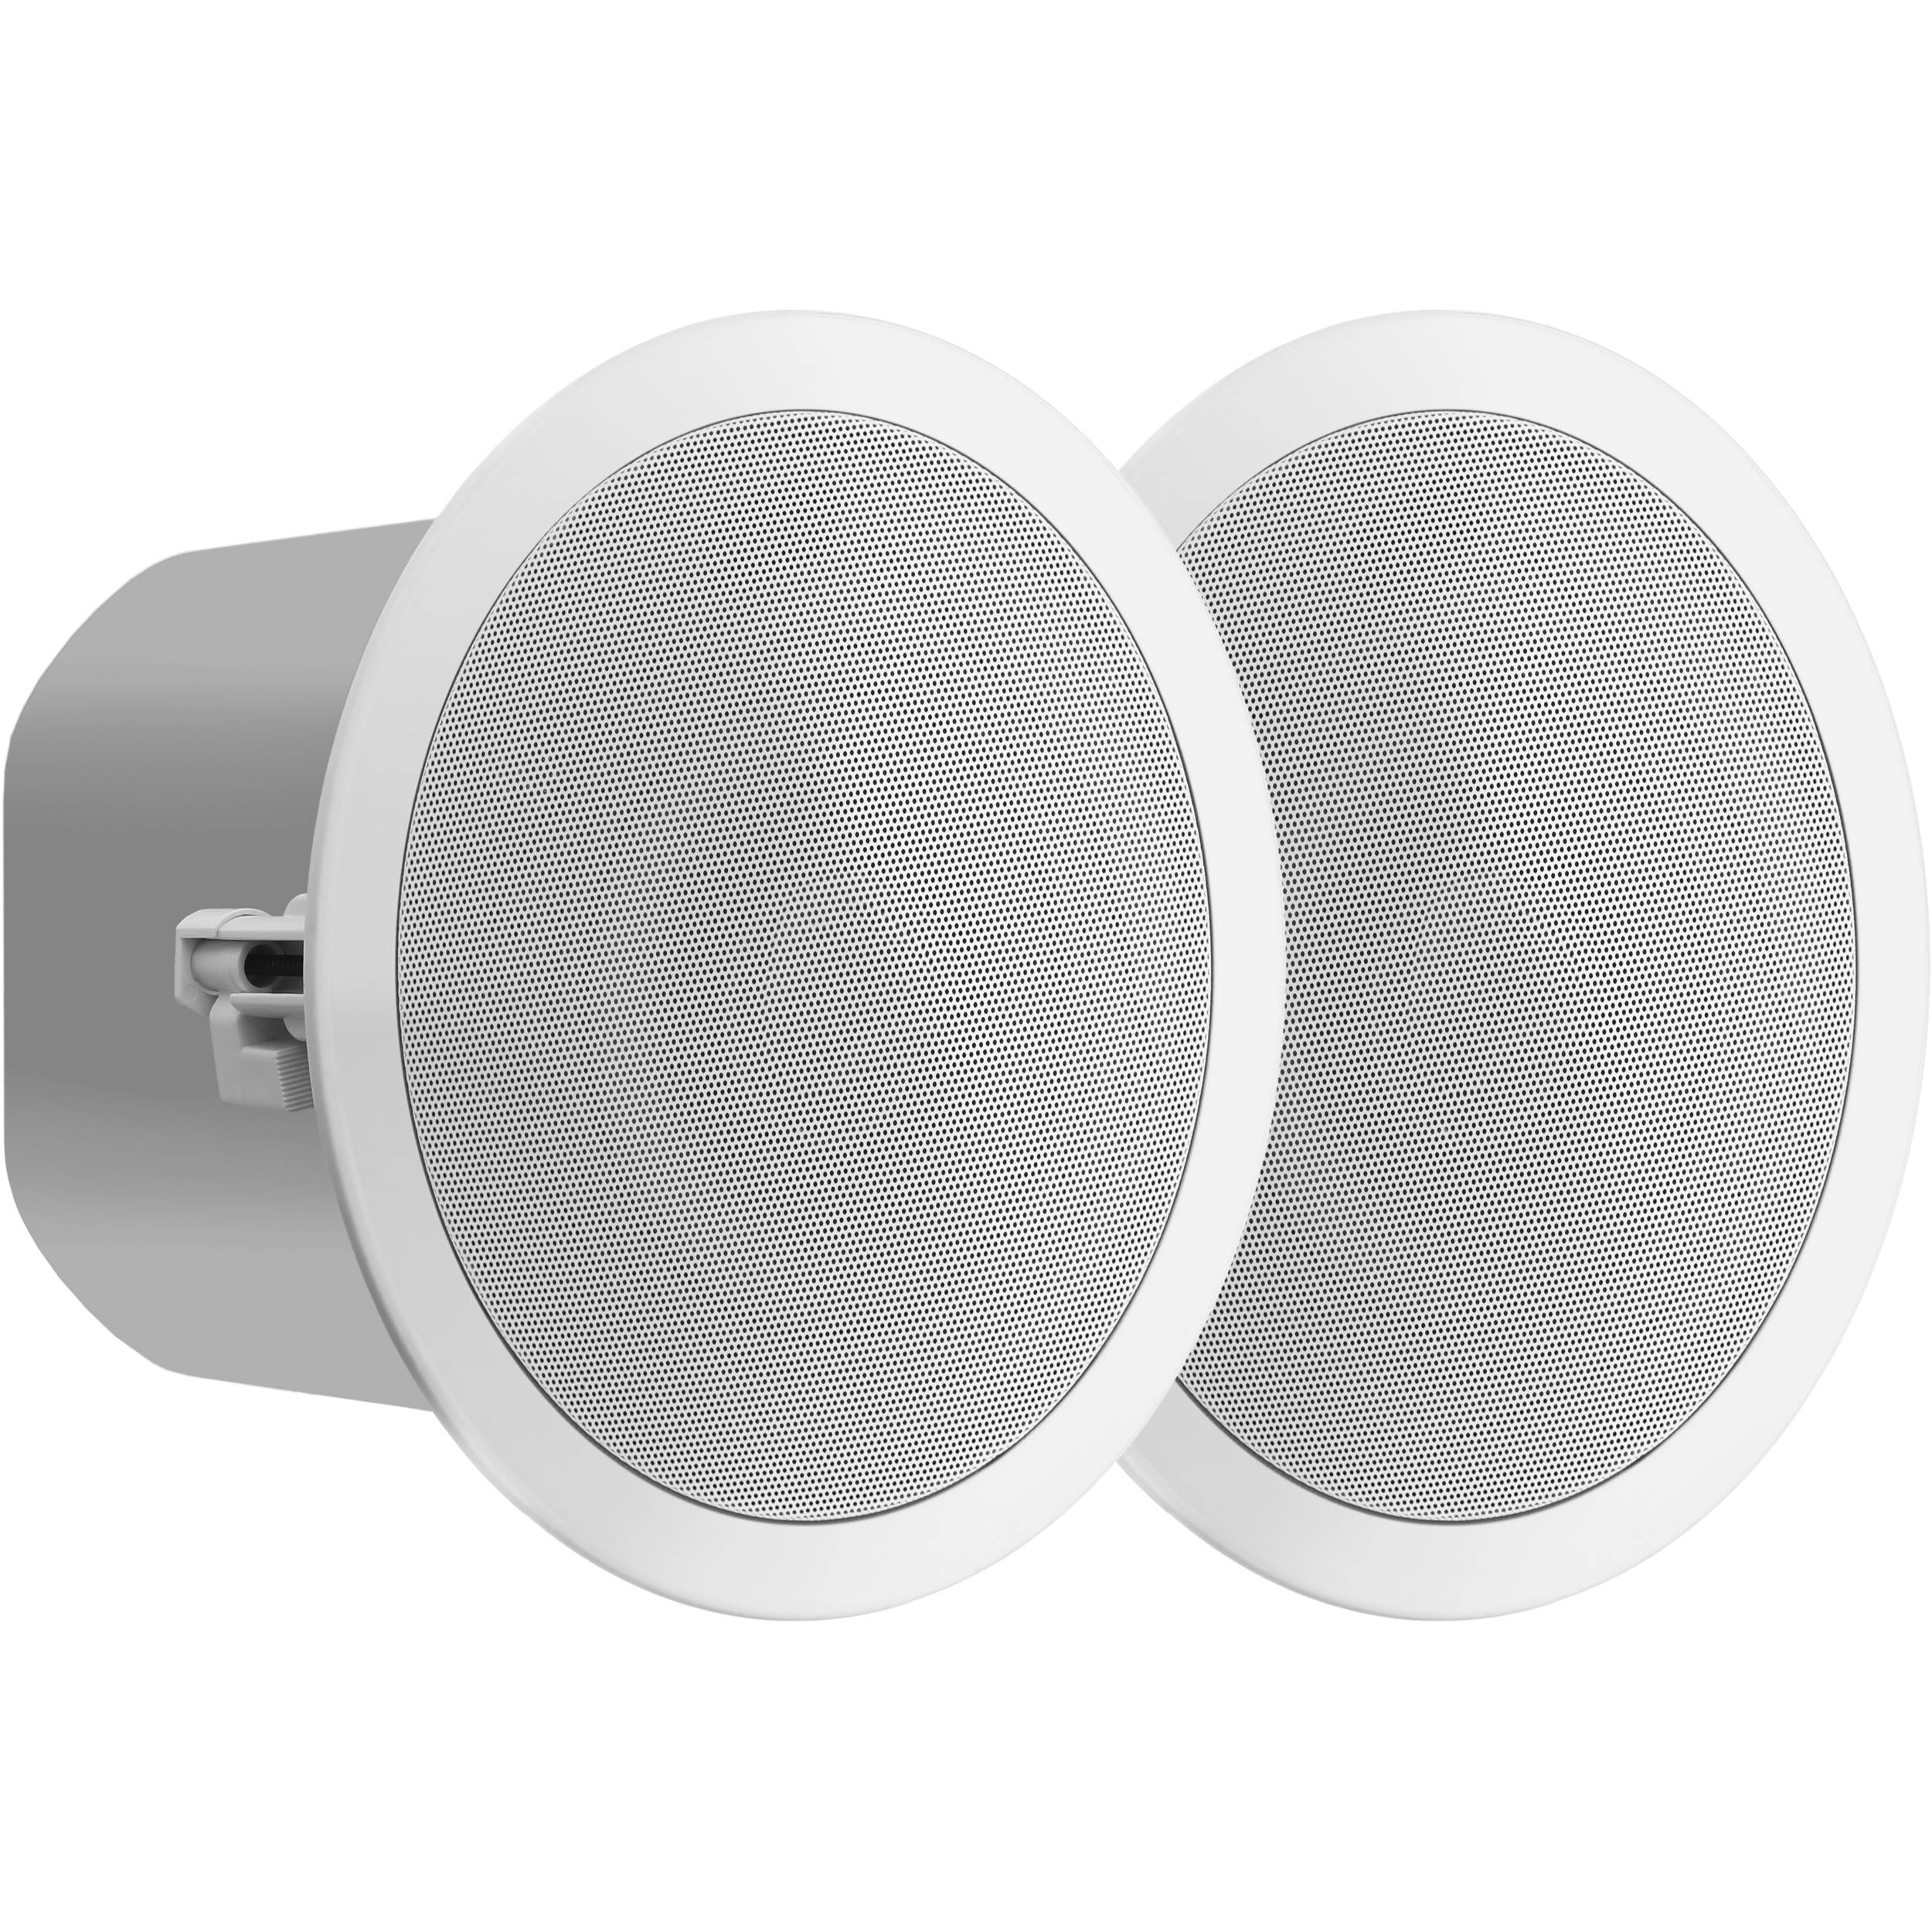 Senal Csp 142 80w 4 Quot Premium 2 Way Ceiling Speaker Csp 142